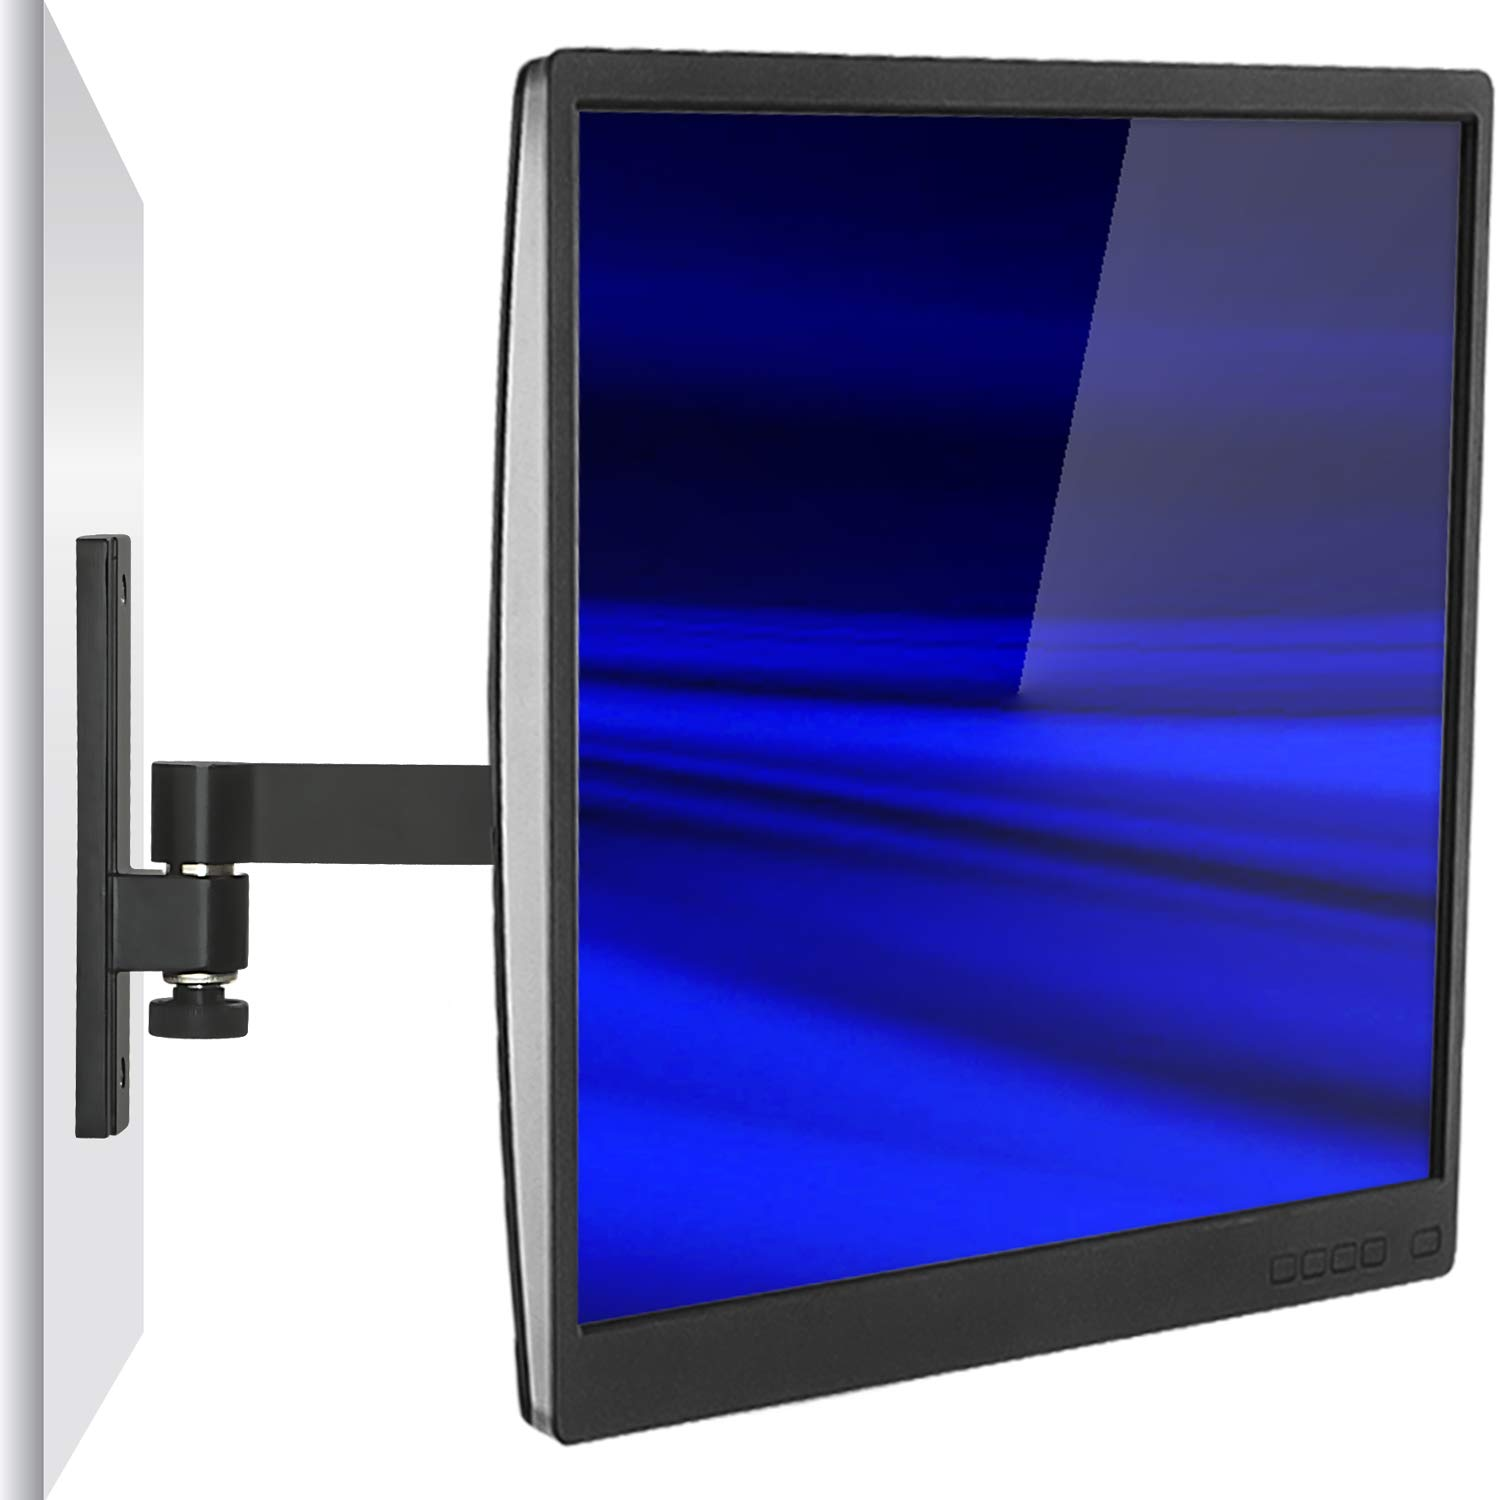 Mount-It! MI-405 Monitor Wall Mount, Full Motion VESA Stand for LCD LED Computer Displays up to 30 Inches, Articulating Arm Fits Monitors up to 30 Inches, VESA 75 100 Compatible, 33 lb Capacity Black